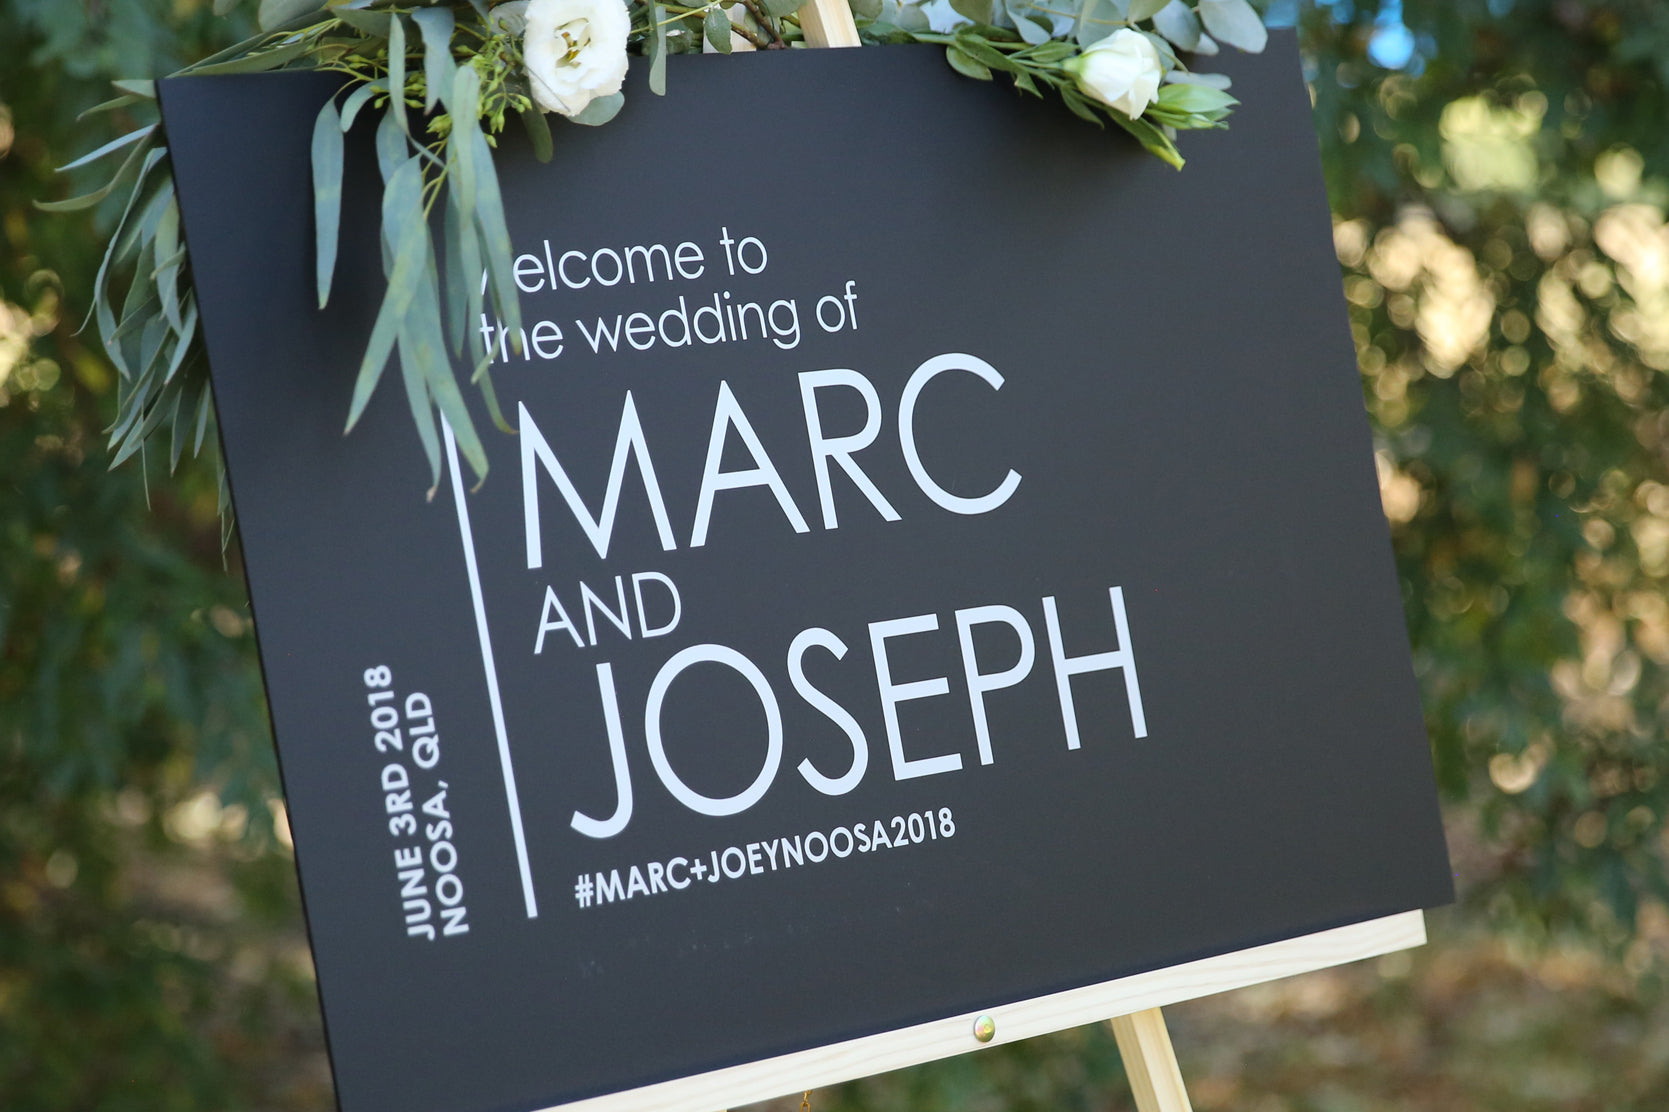 Black an Silver, wedding sign - welcome to our wedding